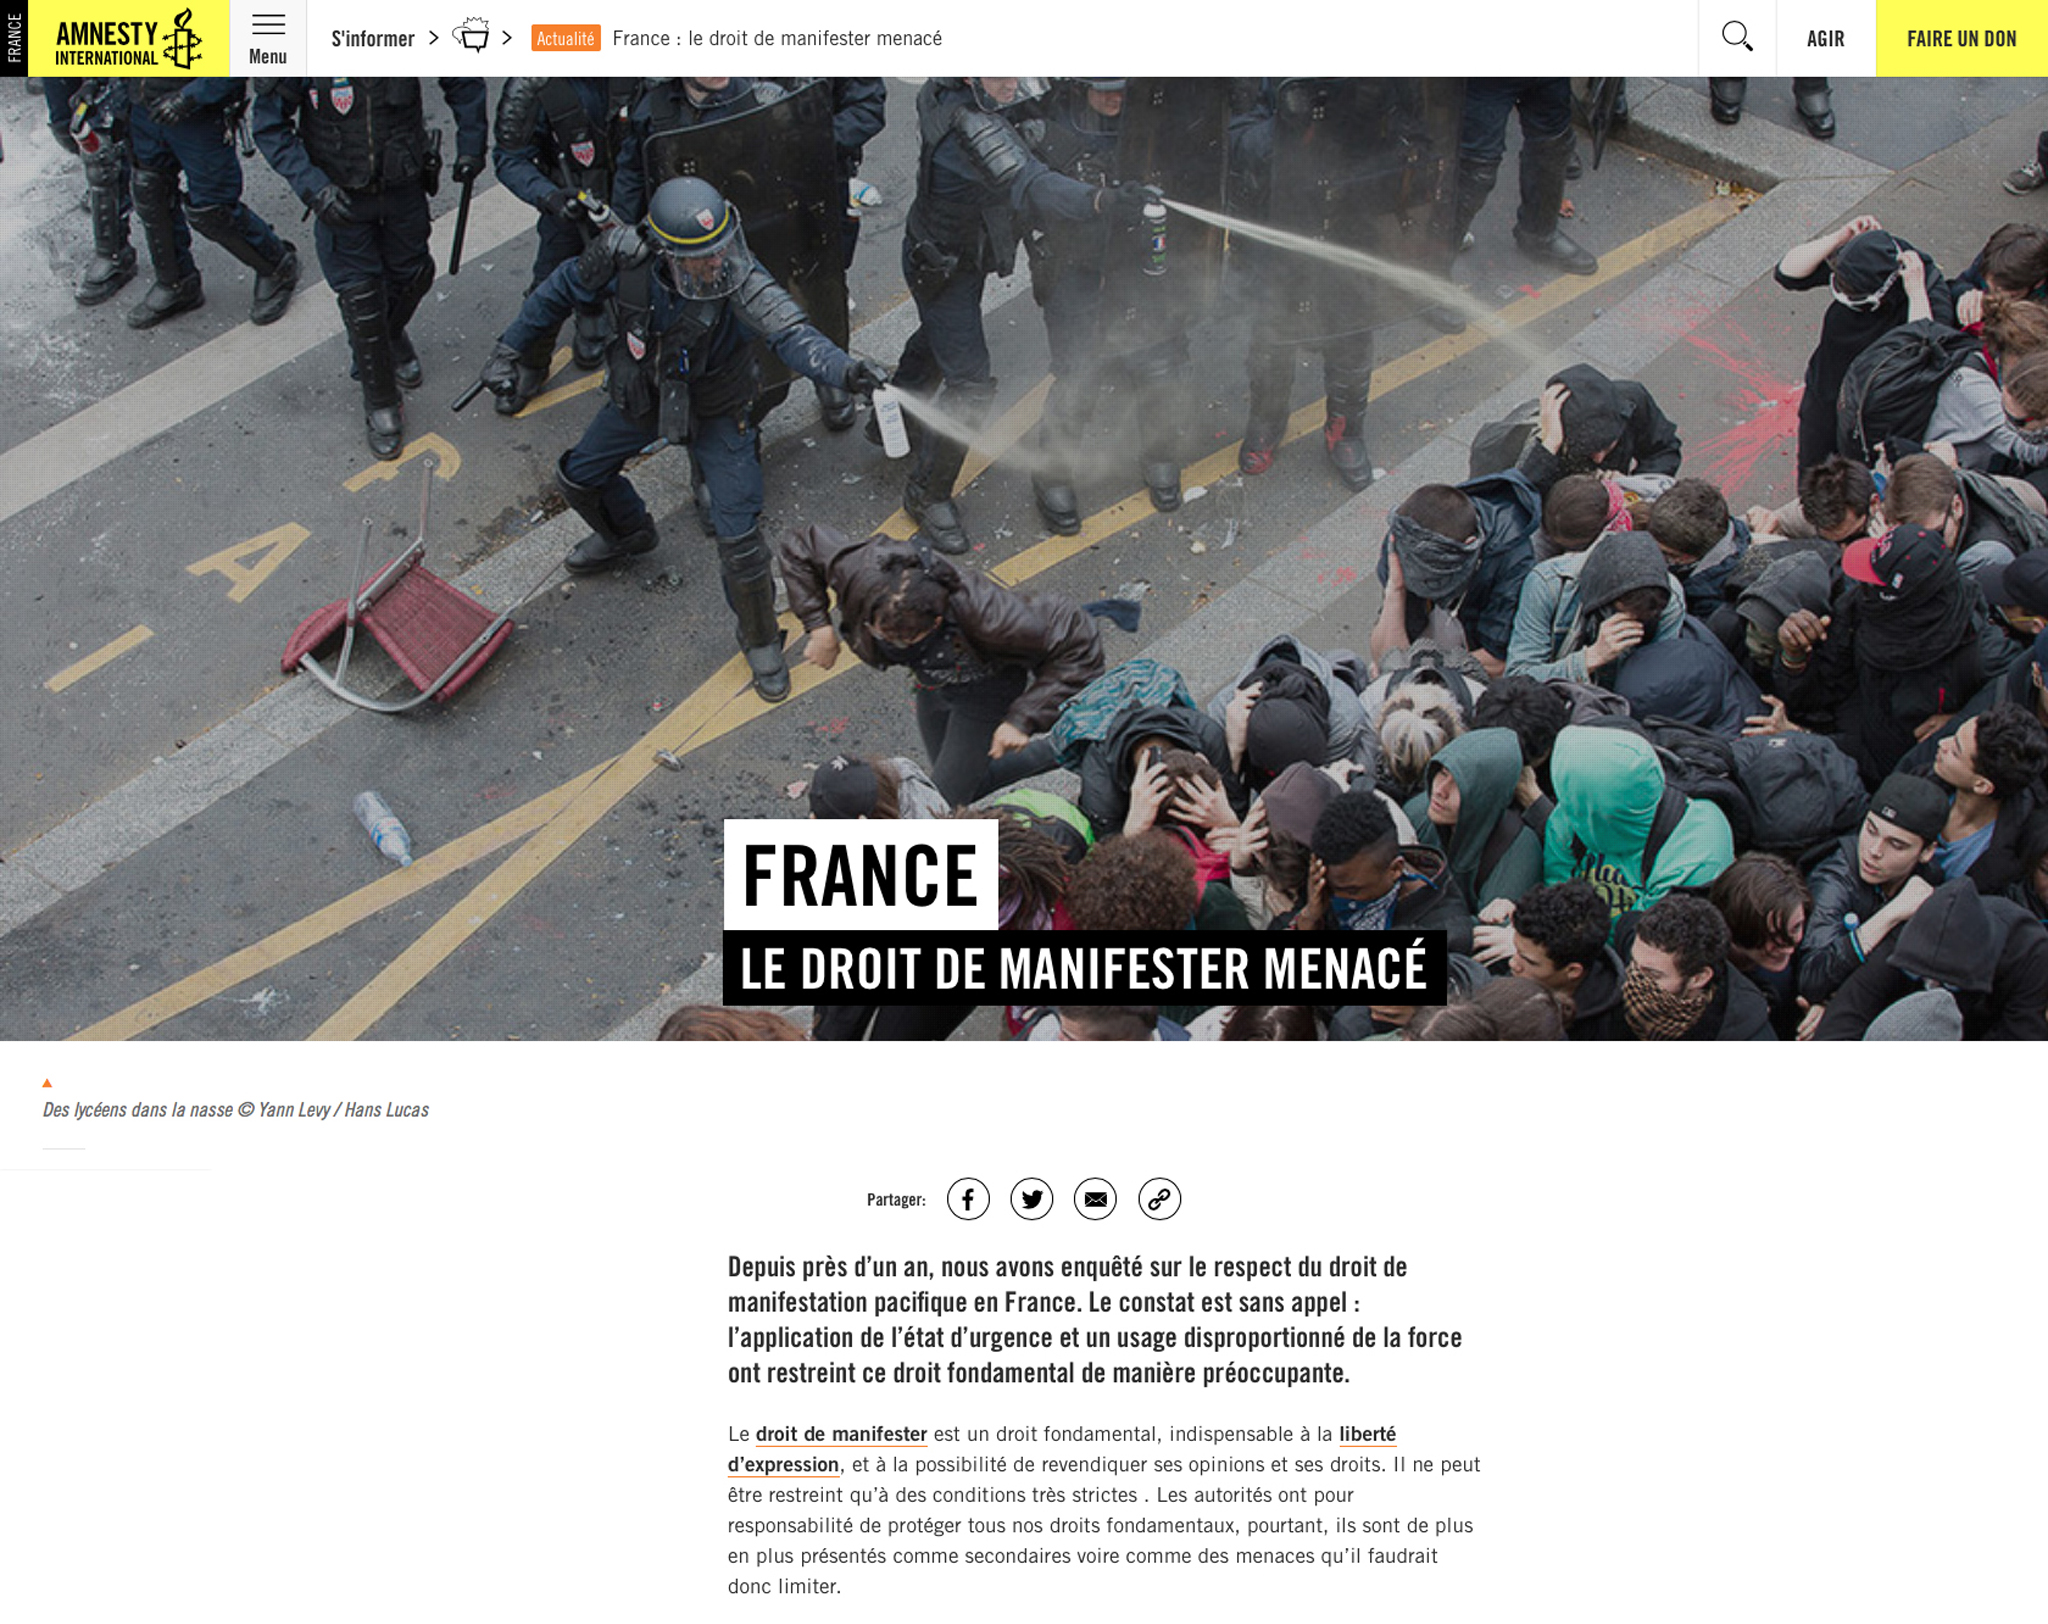 FRANCE LE DROIT DE MANIFETER Rapport Amnesty International